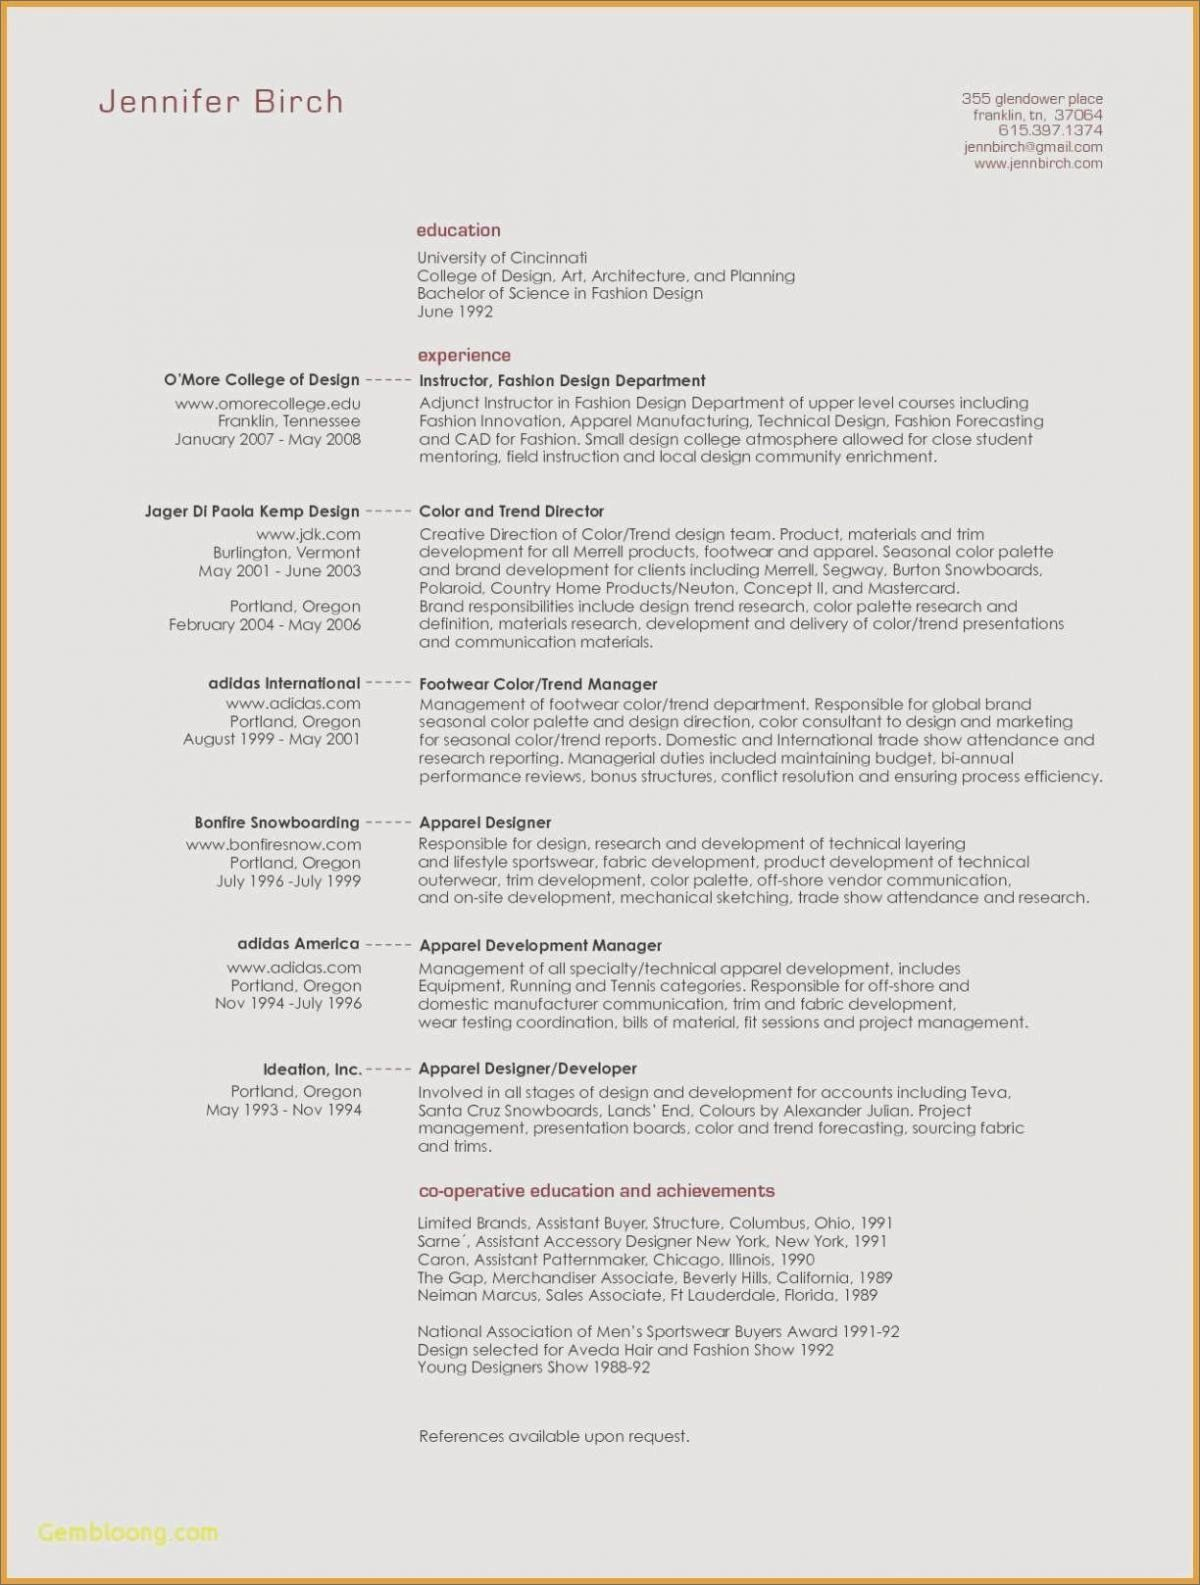 Coloring Book Artist Job Unique Resume With Color Templates Elegant S Artist Resume Resume Examples Cover Letter For Resume Resume Skills